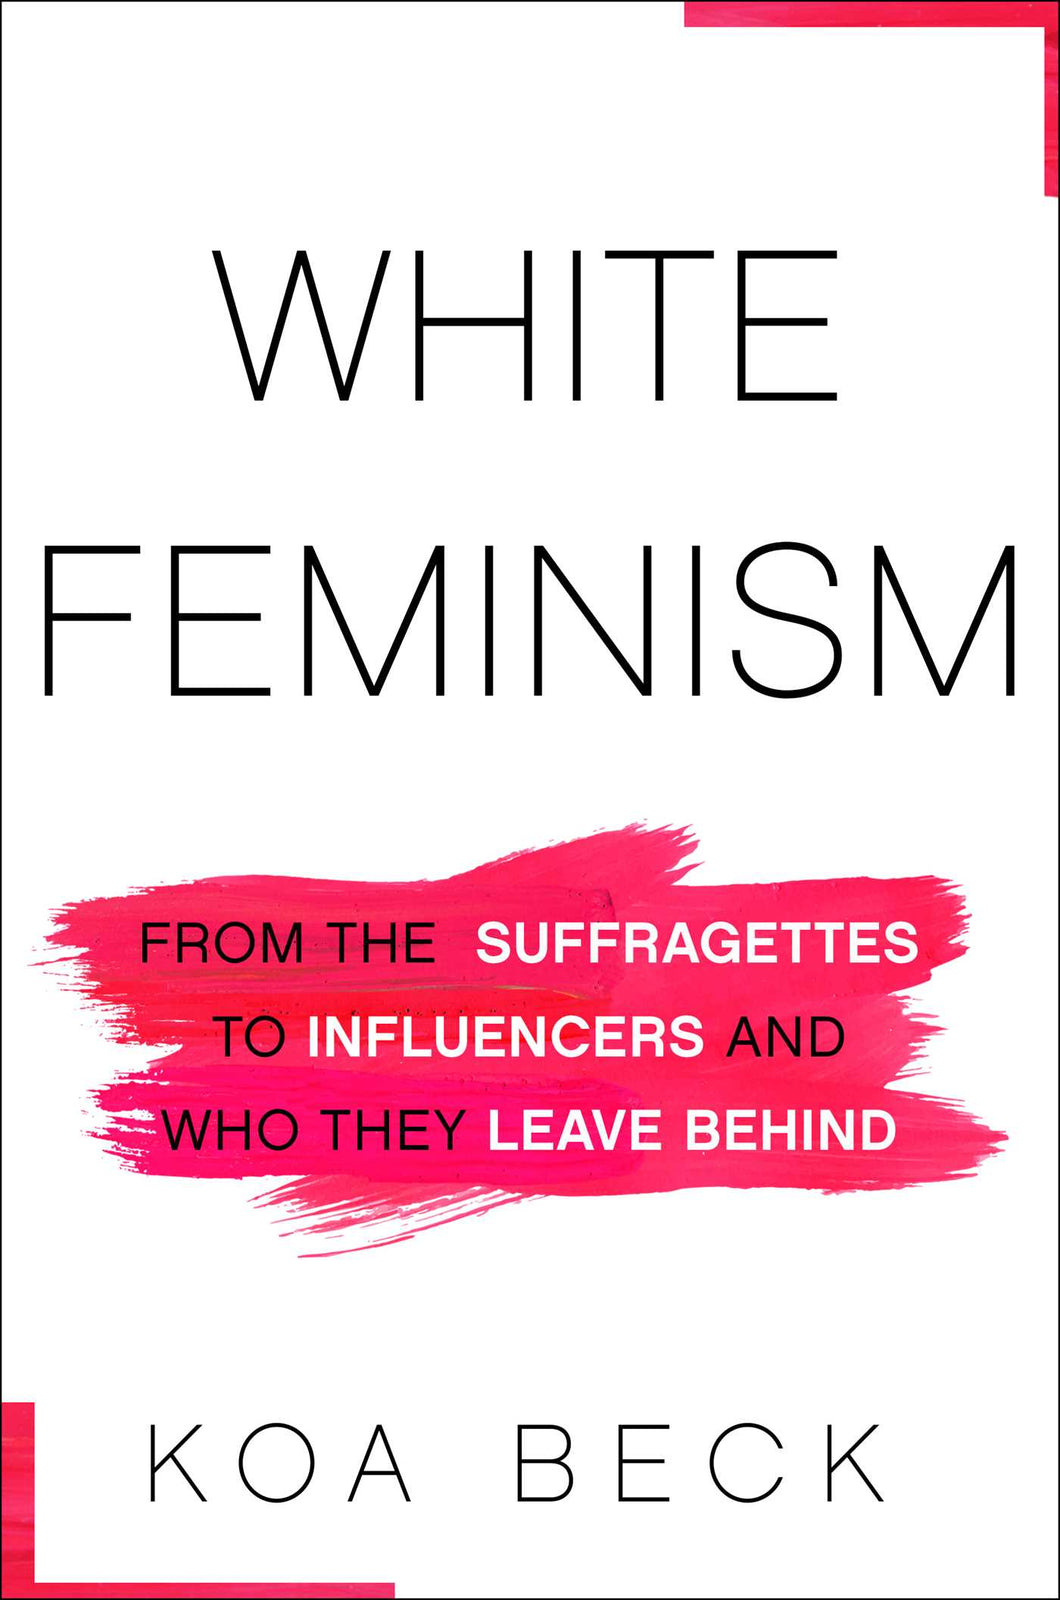 White Feminism: From the Suffragettes to Influencers and Who They Leave Behind by Koa Beck (Pre-Order, Jan 5)